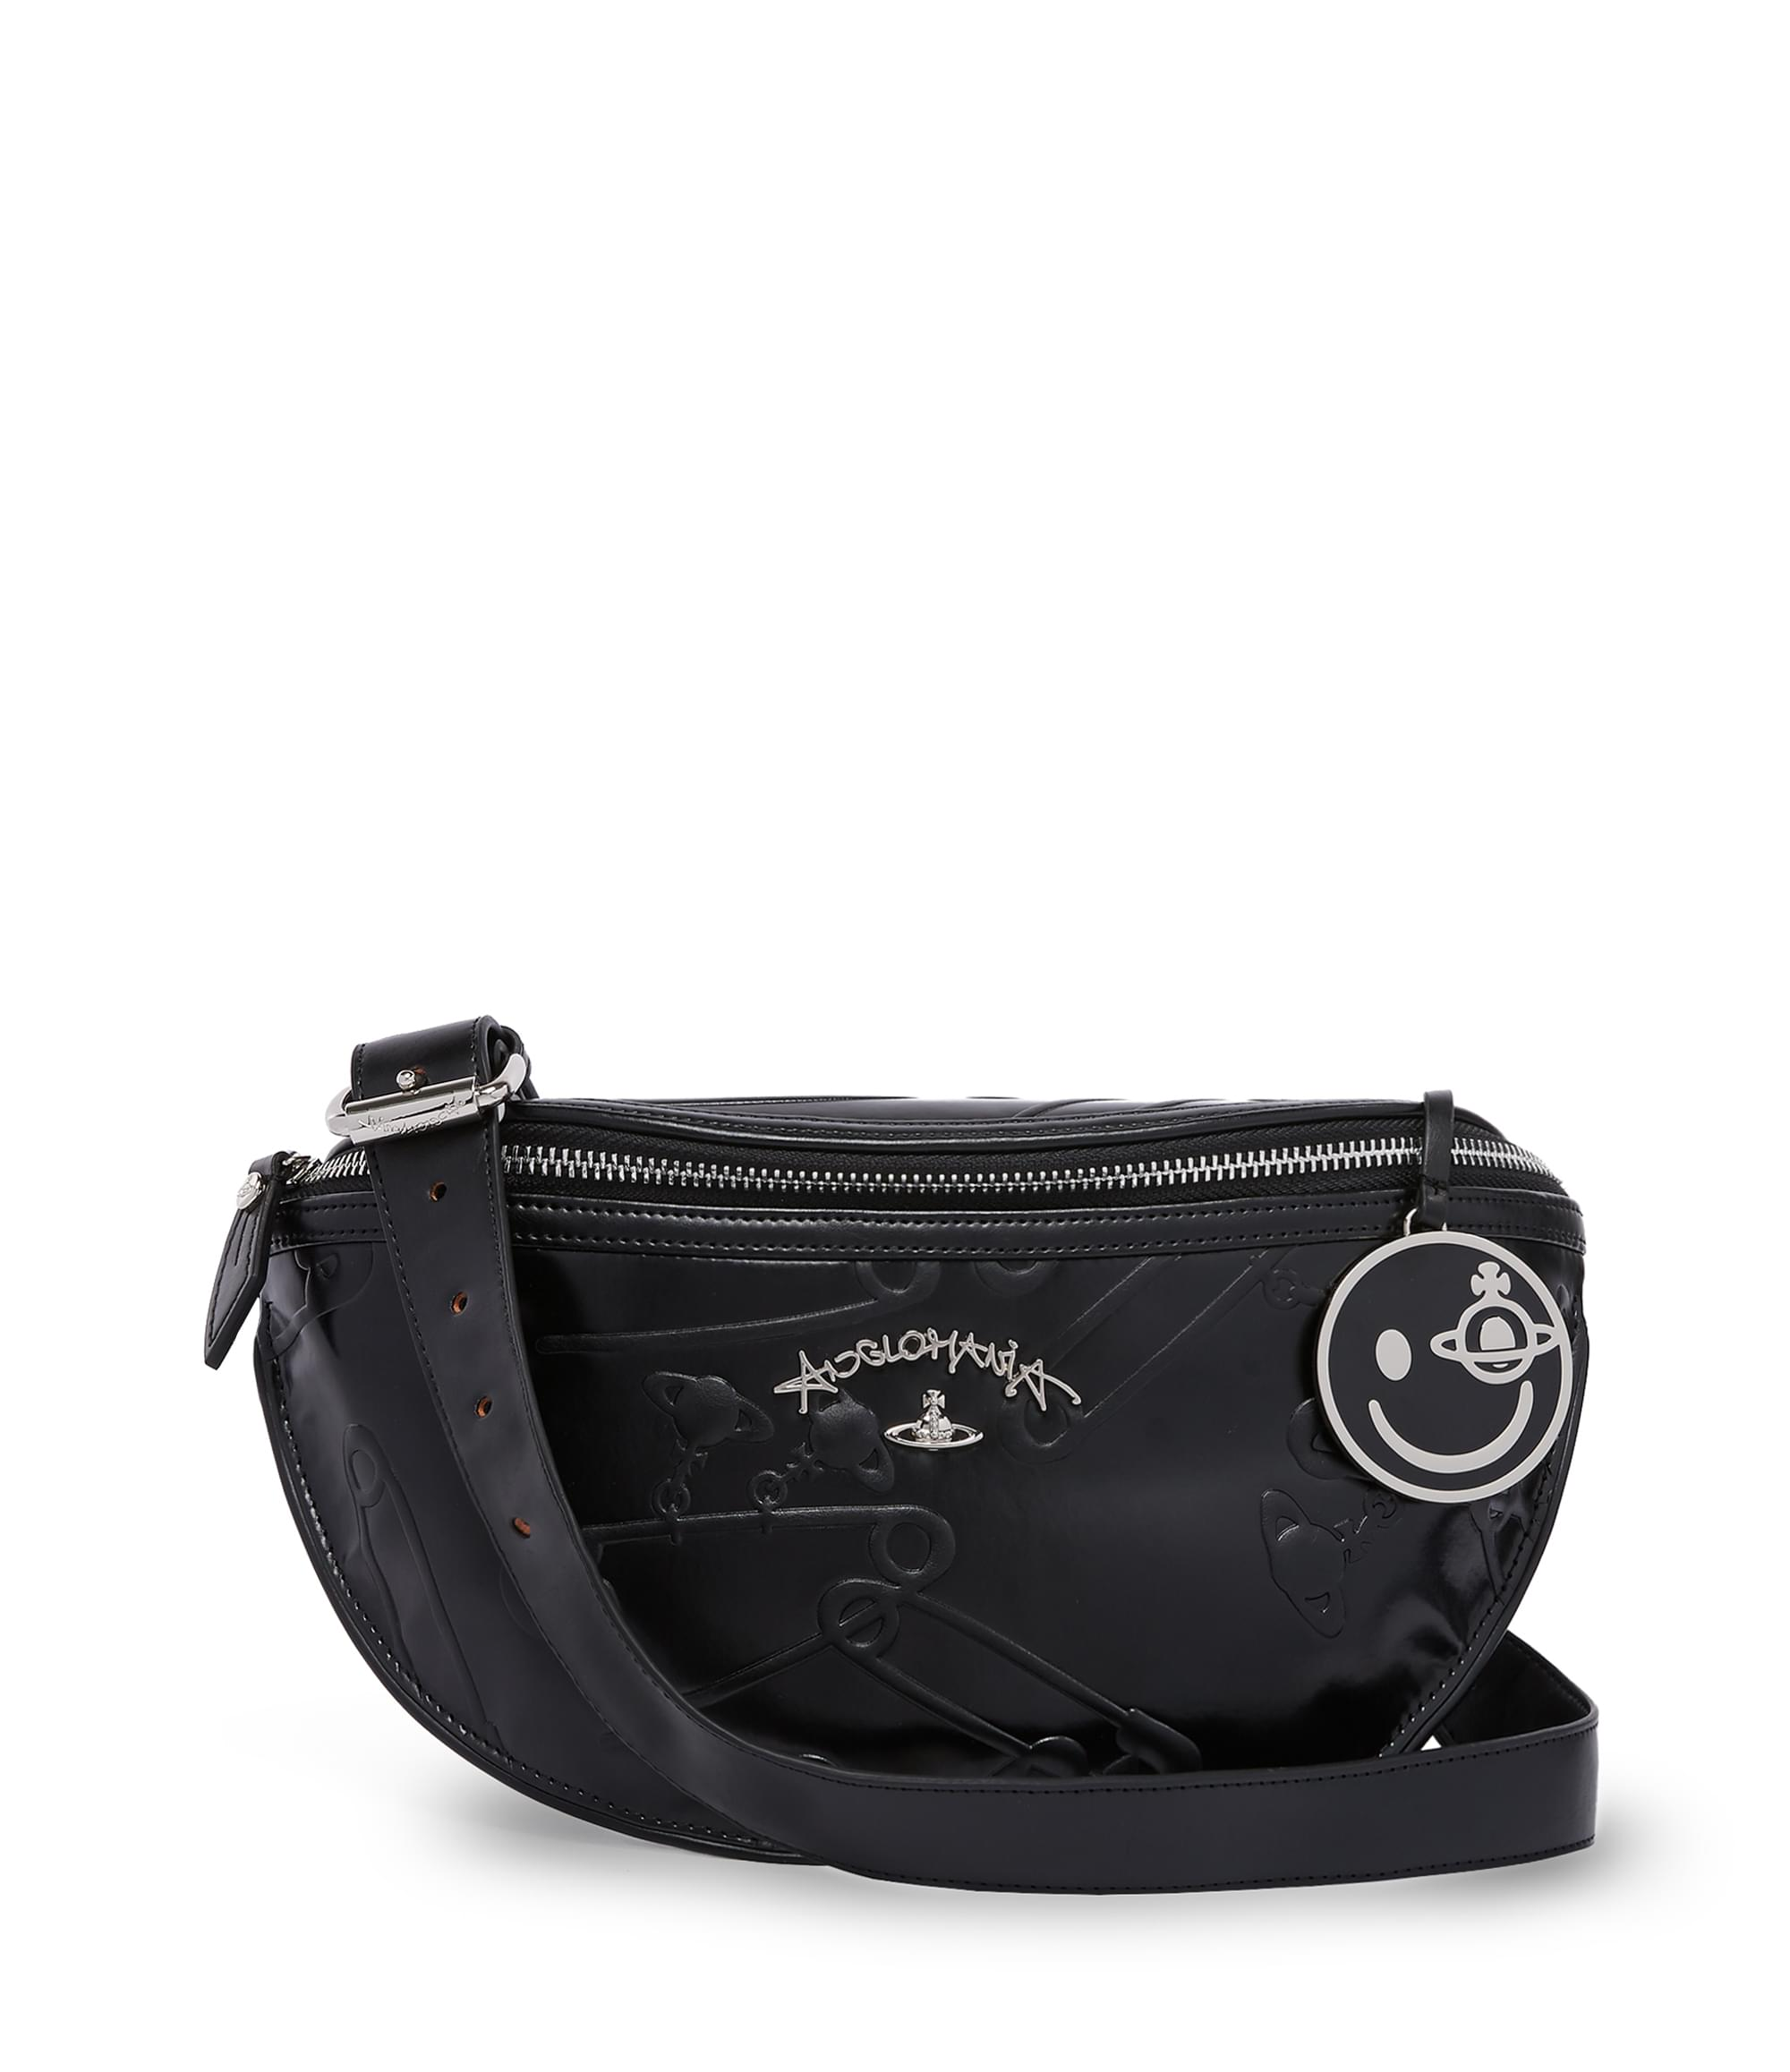 Vivienne Westwood Black Safety Pin Bum Bag 13975